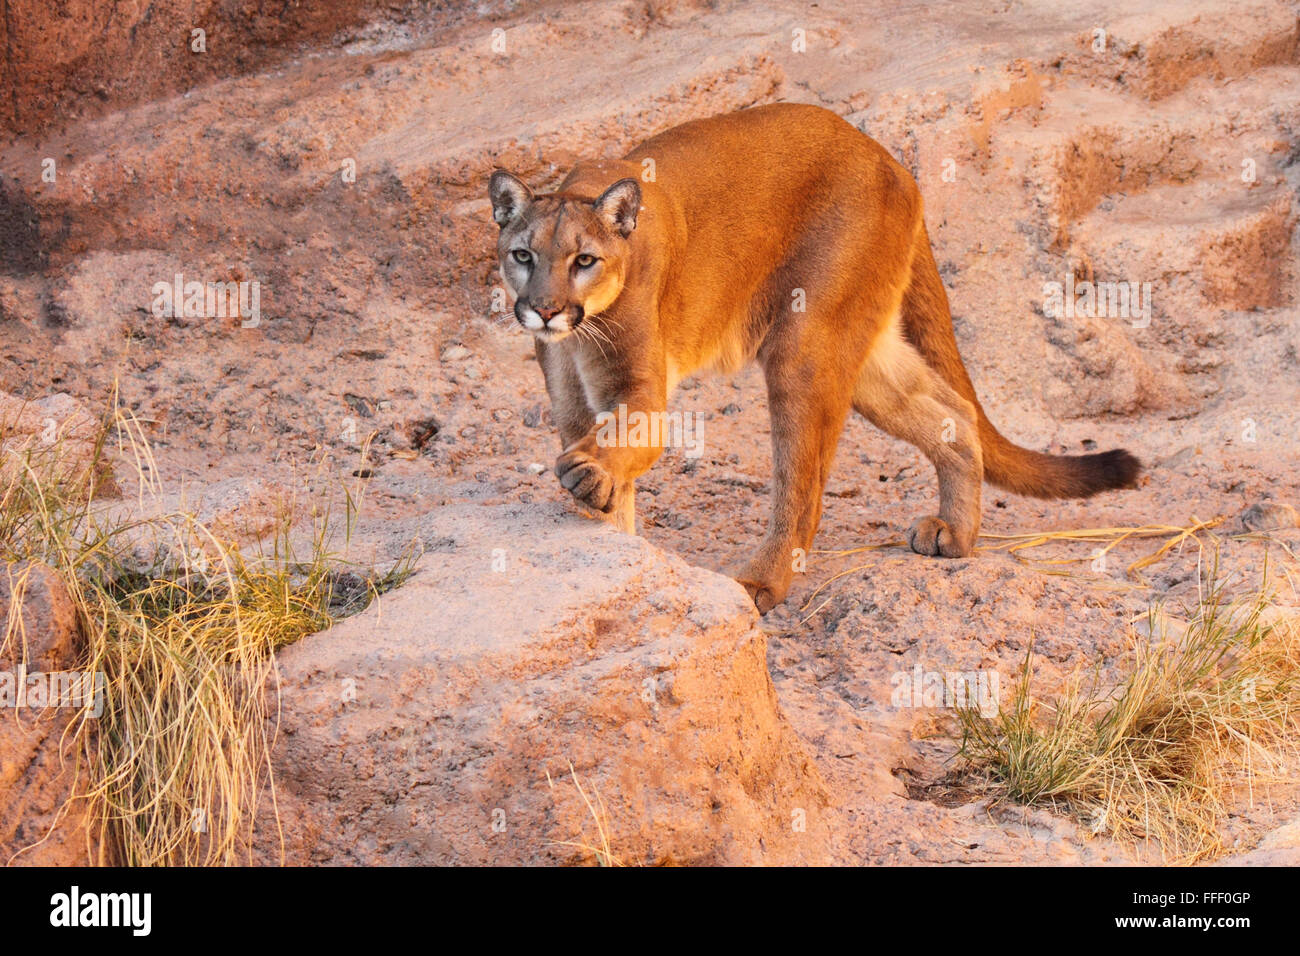 A Puma stepping up. - Stock Image